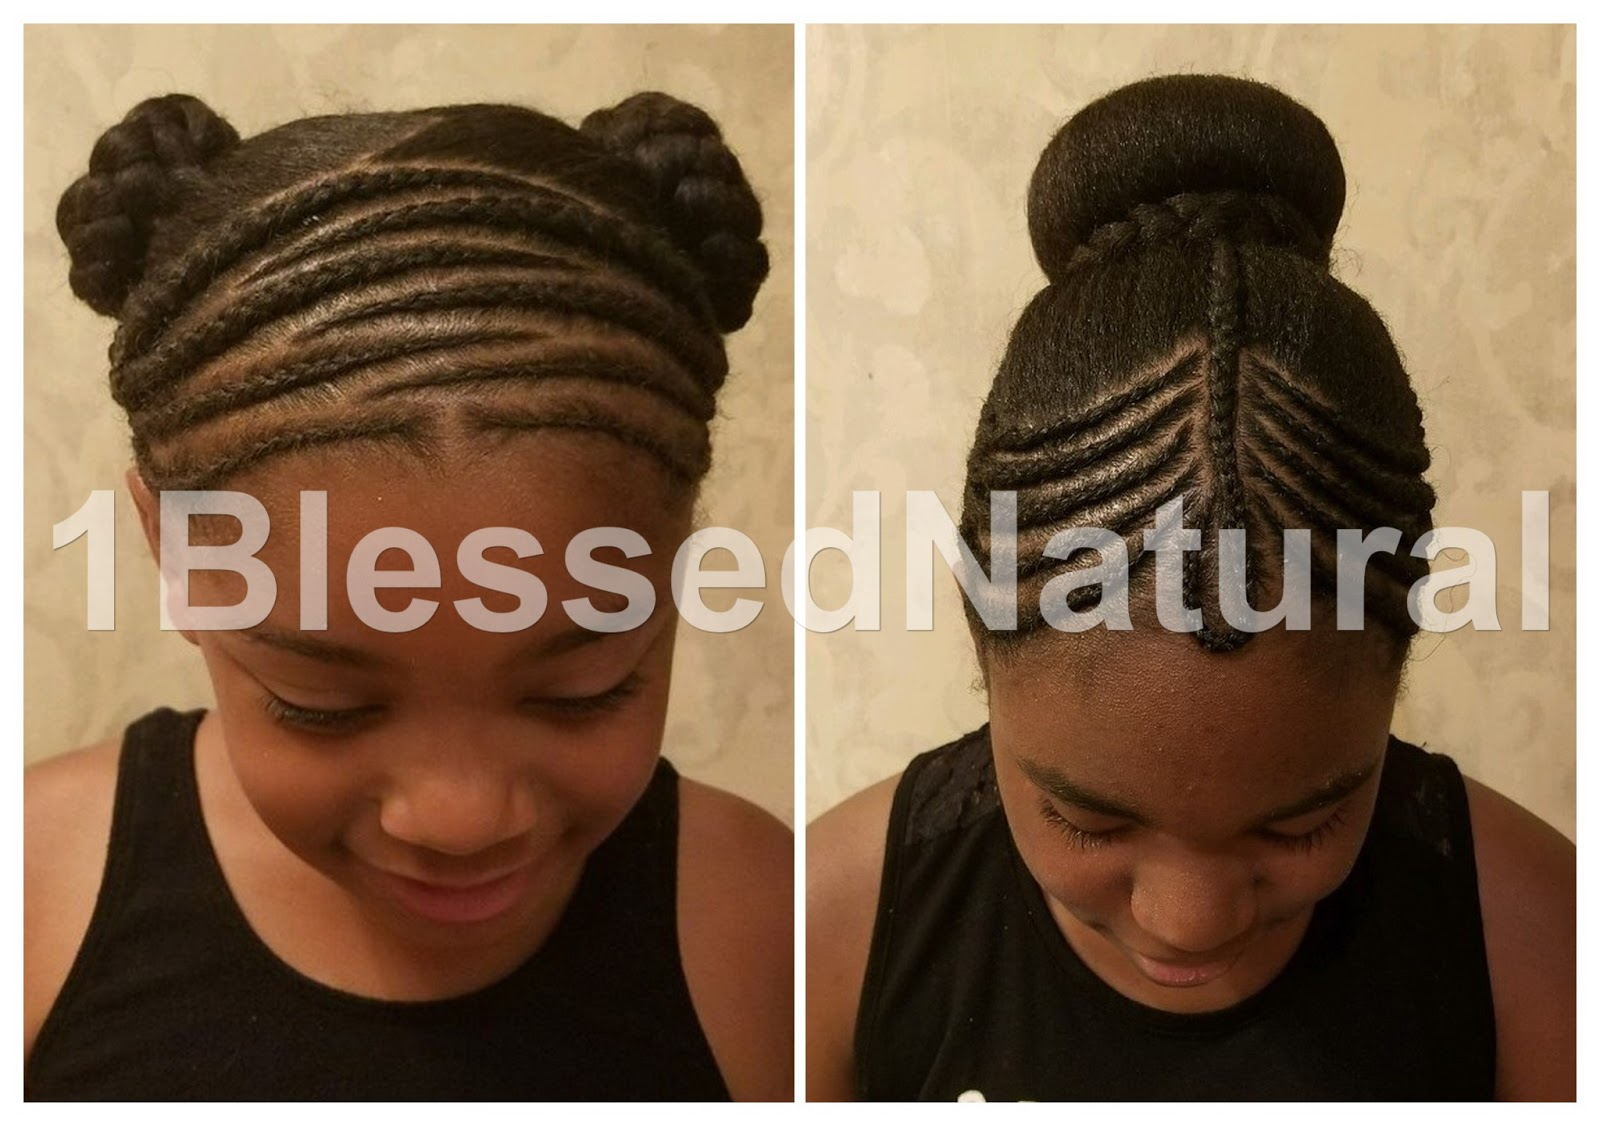 1bn kids: little girl natural hairstyles (part 2)